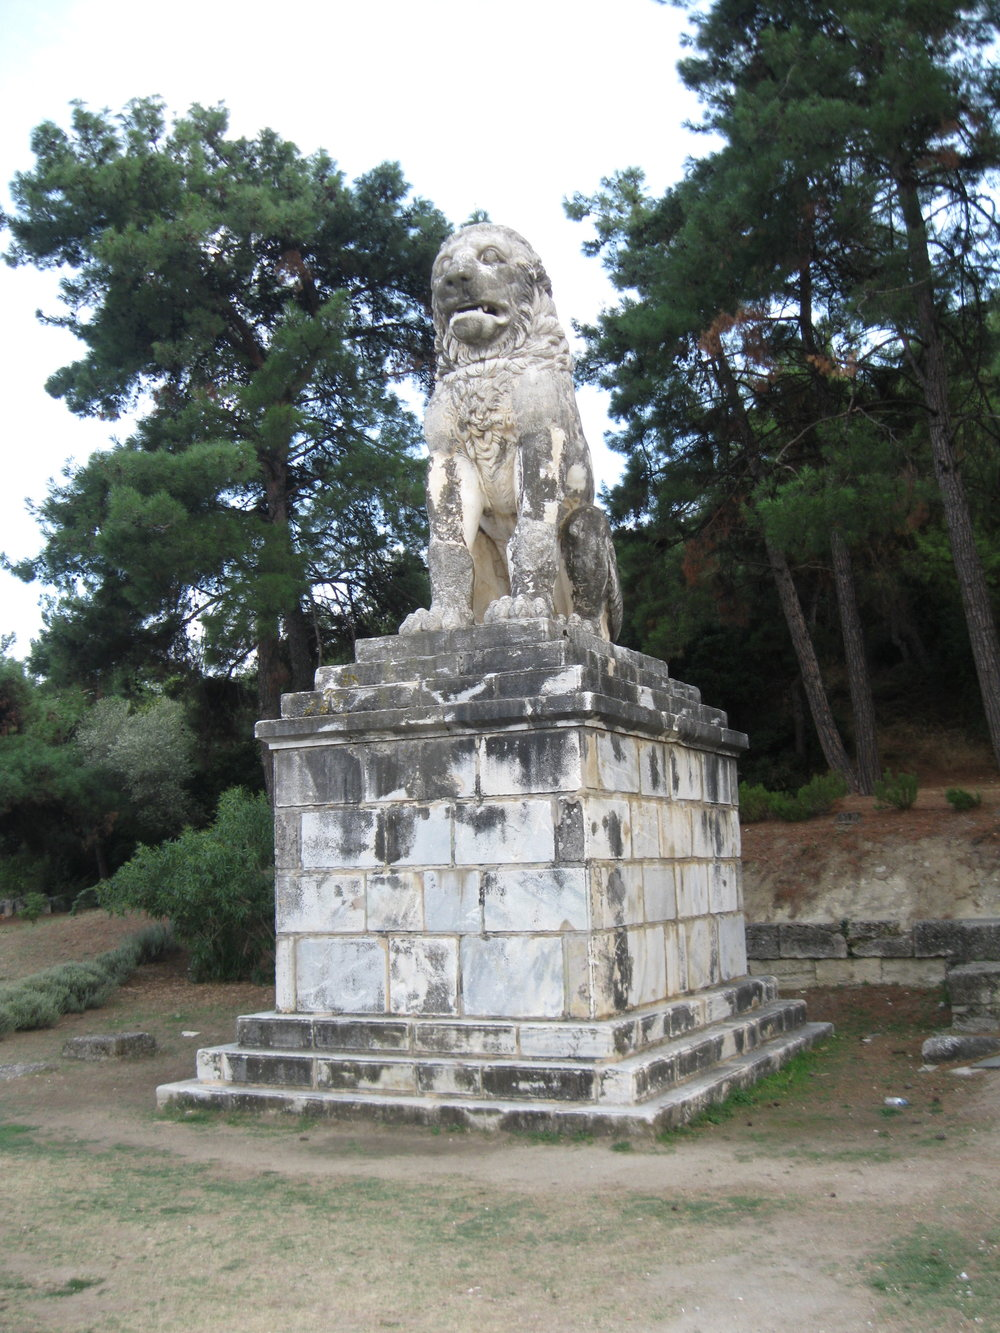 The Lion Monument to Alexander the Great's admiral Laomedian of Lesbos